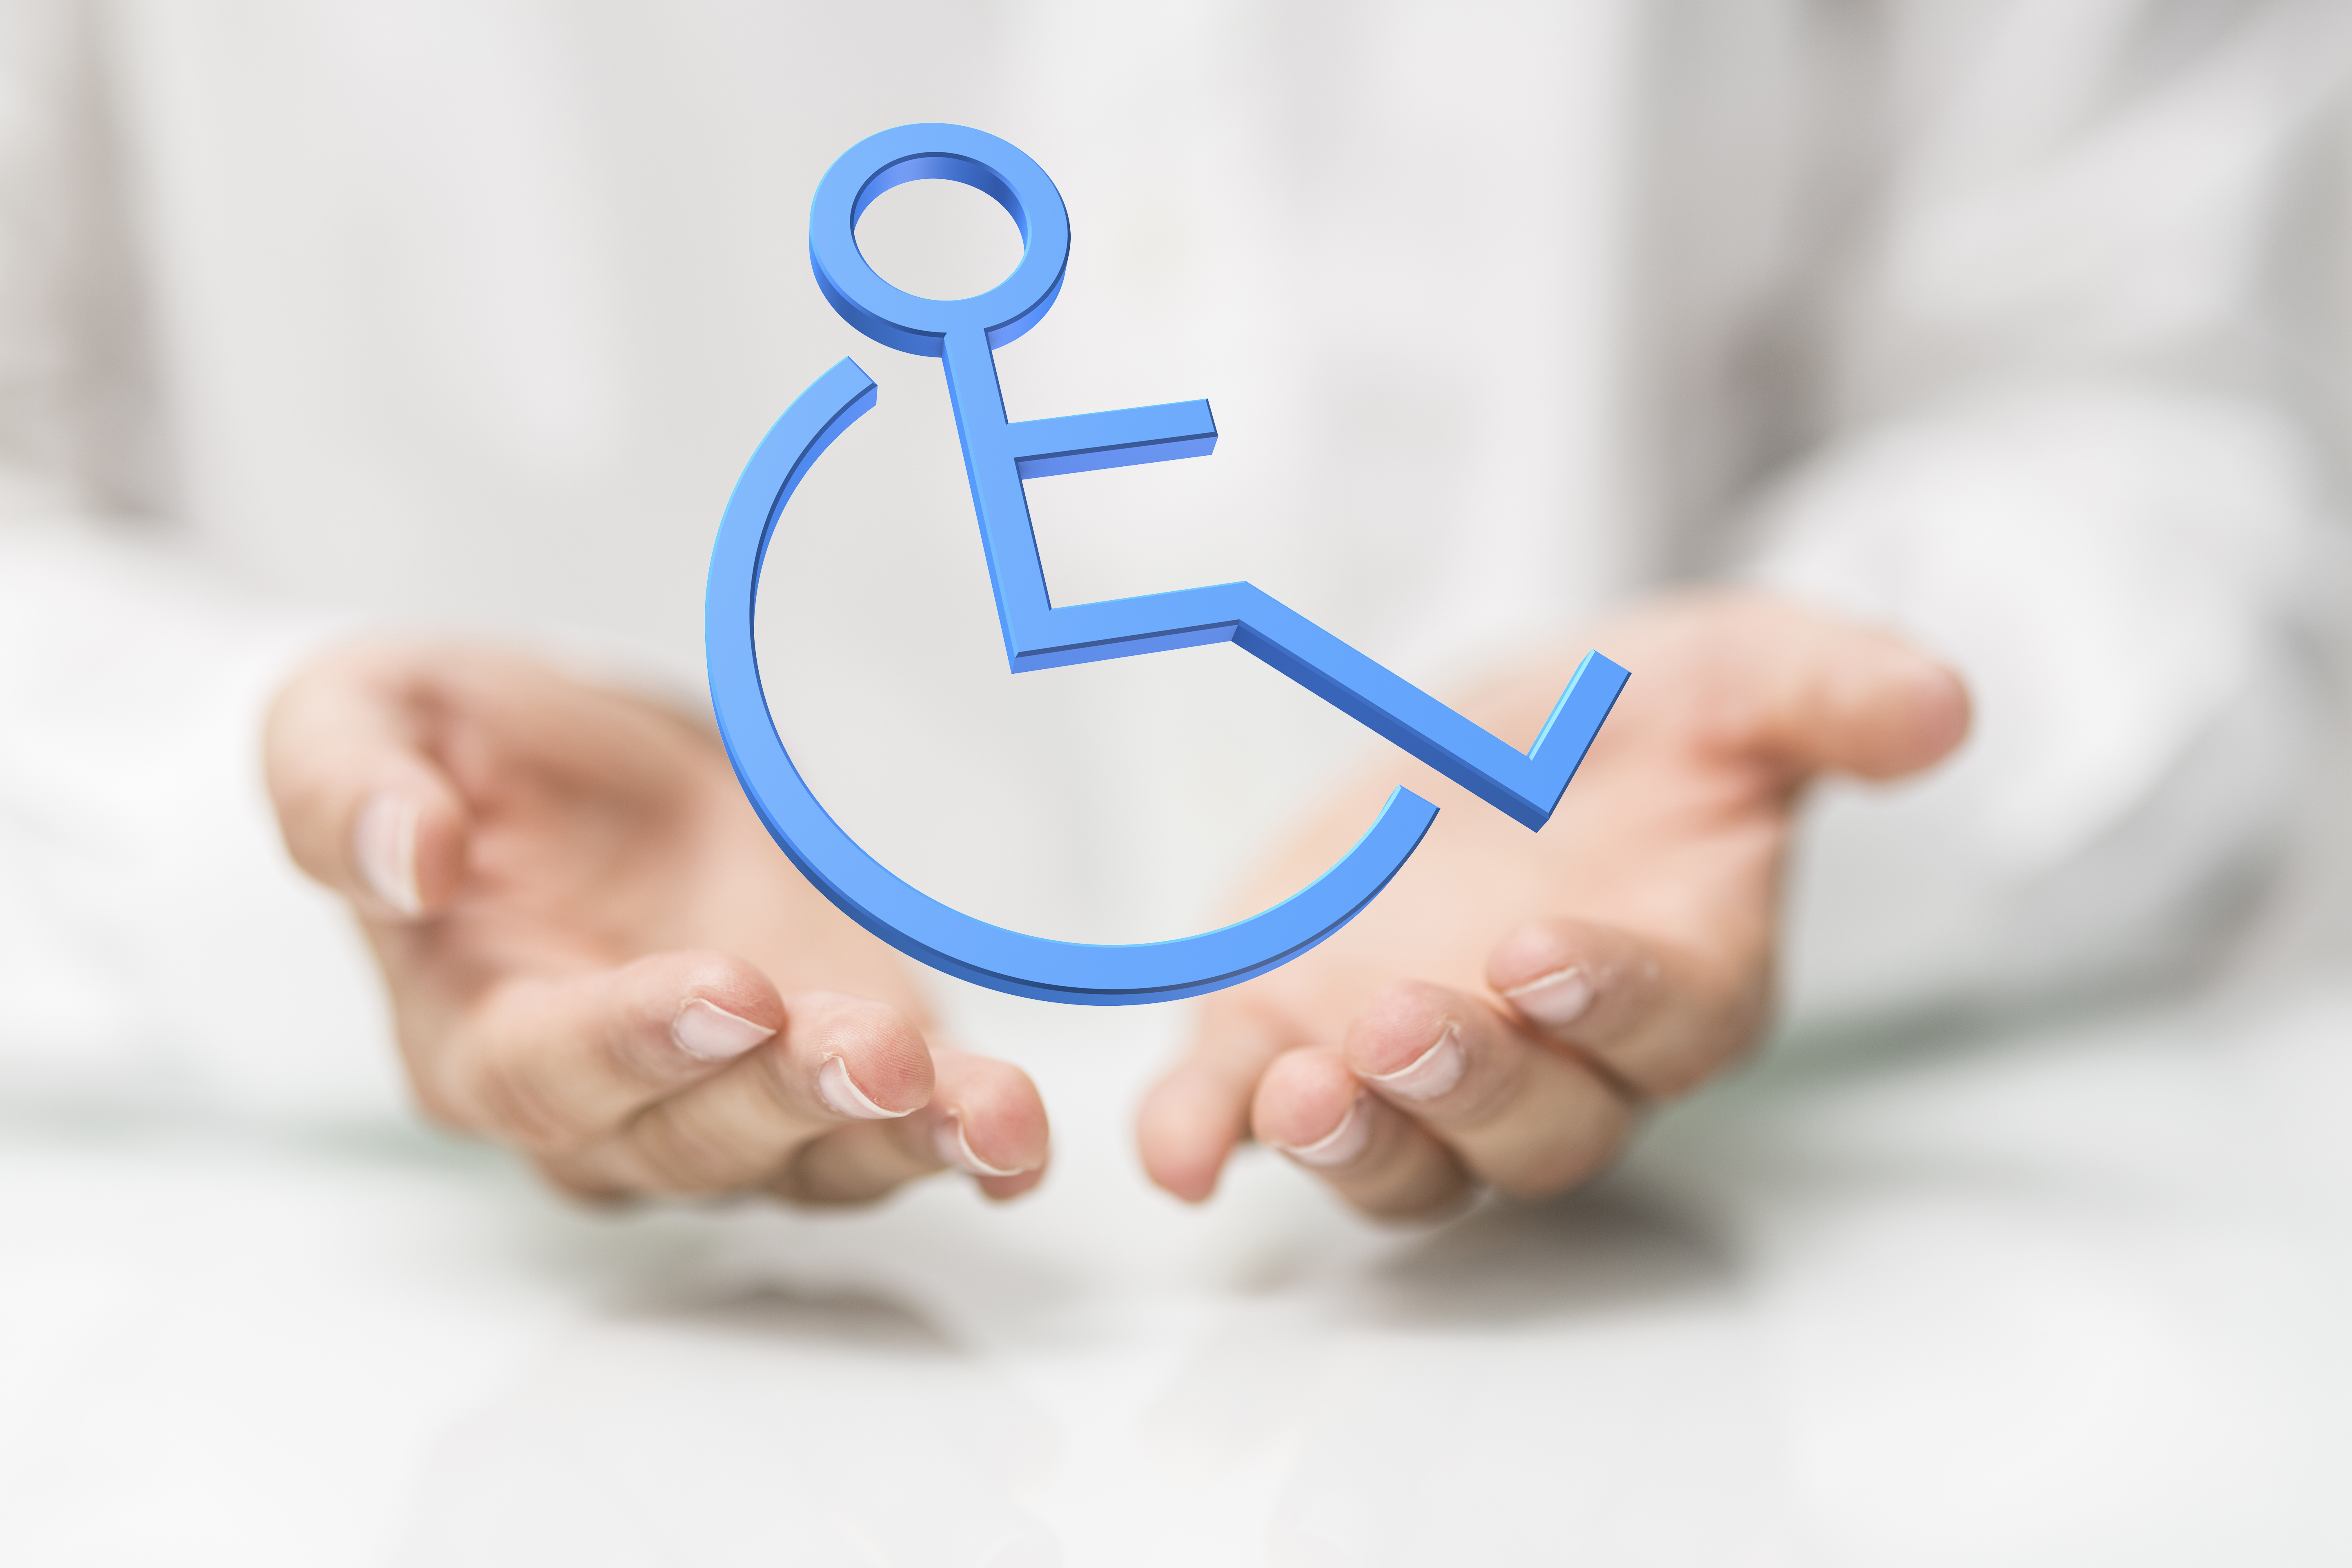 Adapting for disabled customers